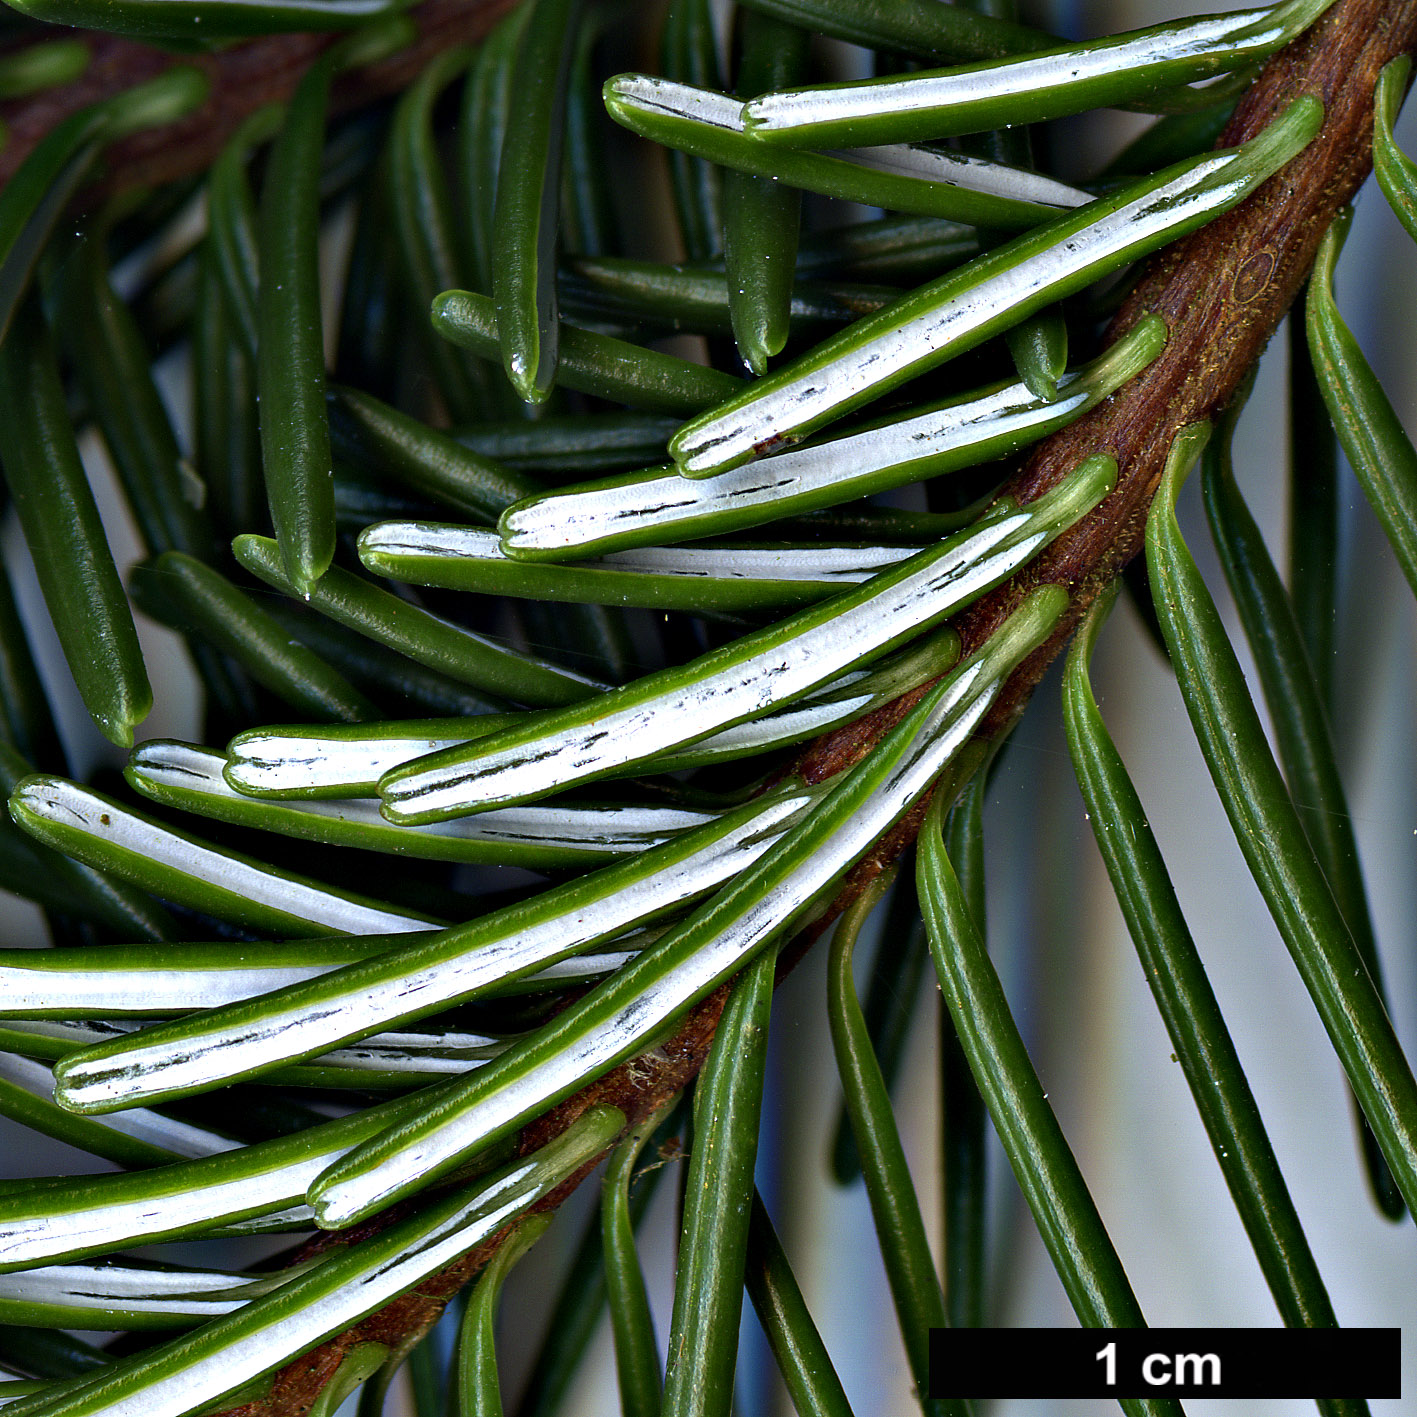 High resolution image: Family: Pinaceae - Genus: Abies - Taxon: delavayi